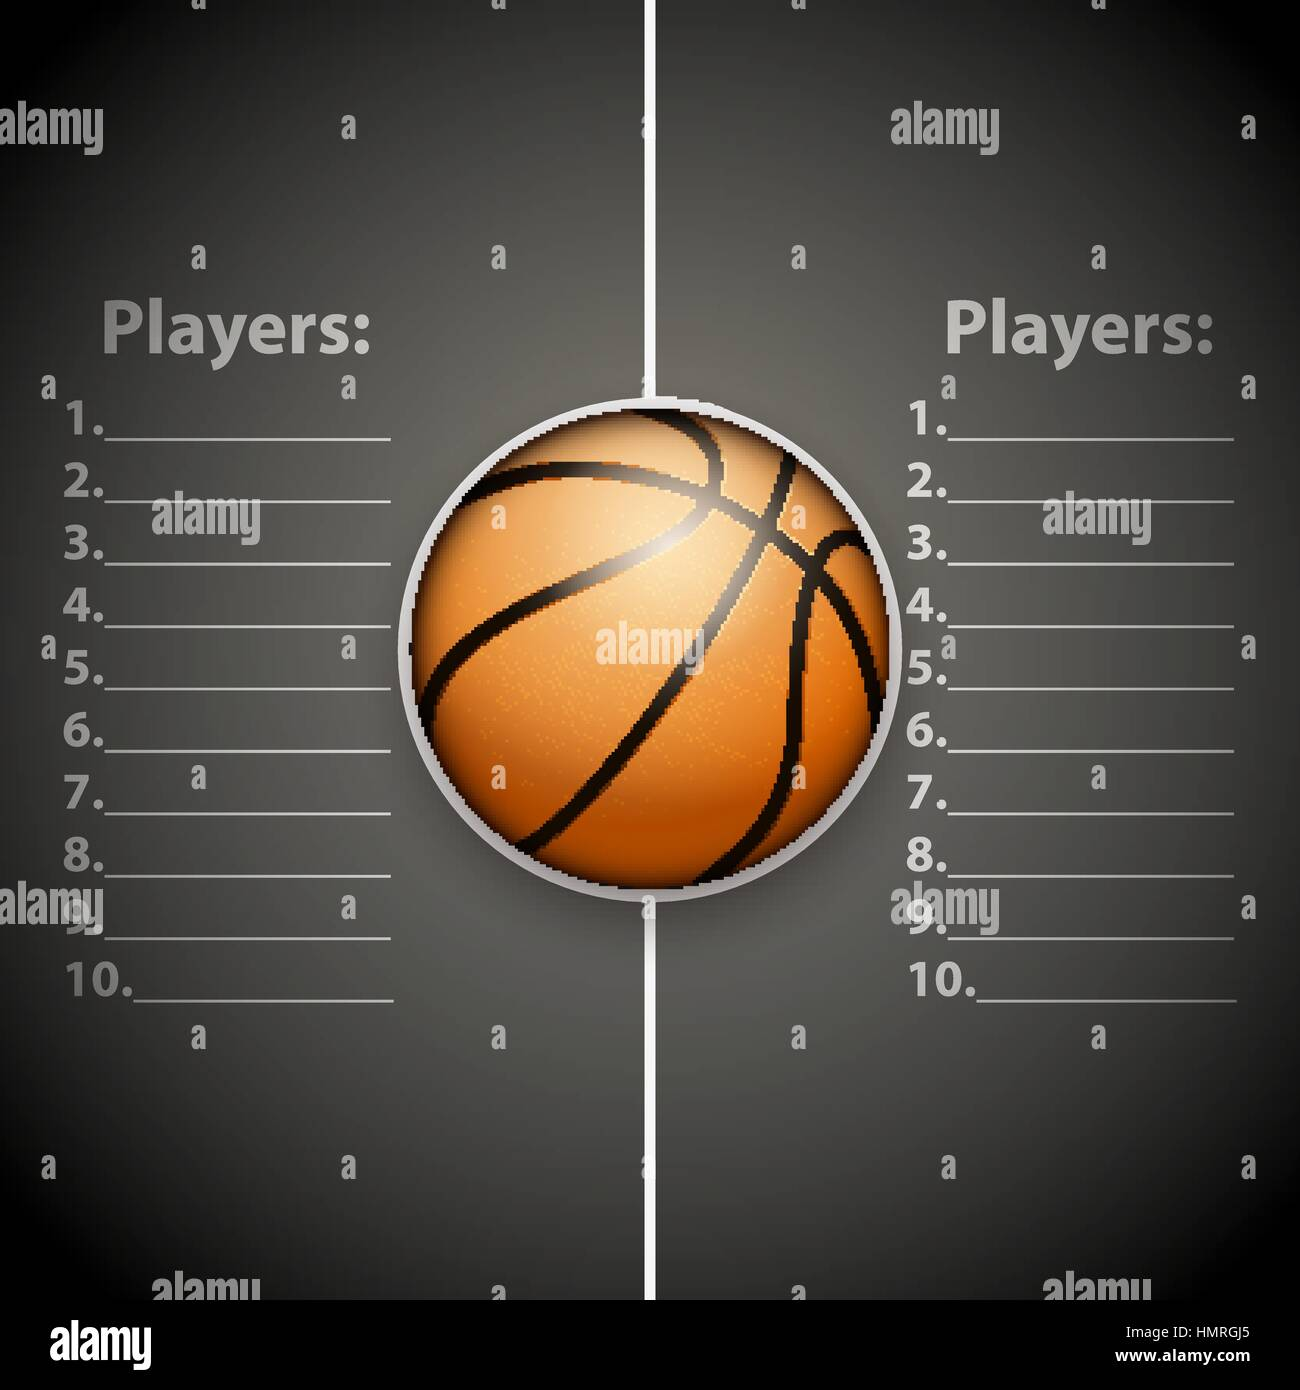 Basketball Game Plan Stockfotos & Basketball Game Plan Bilder ...